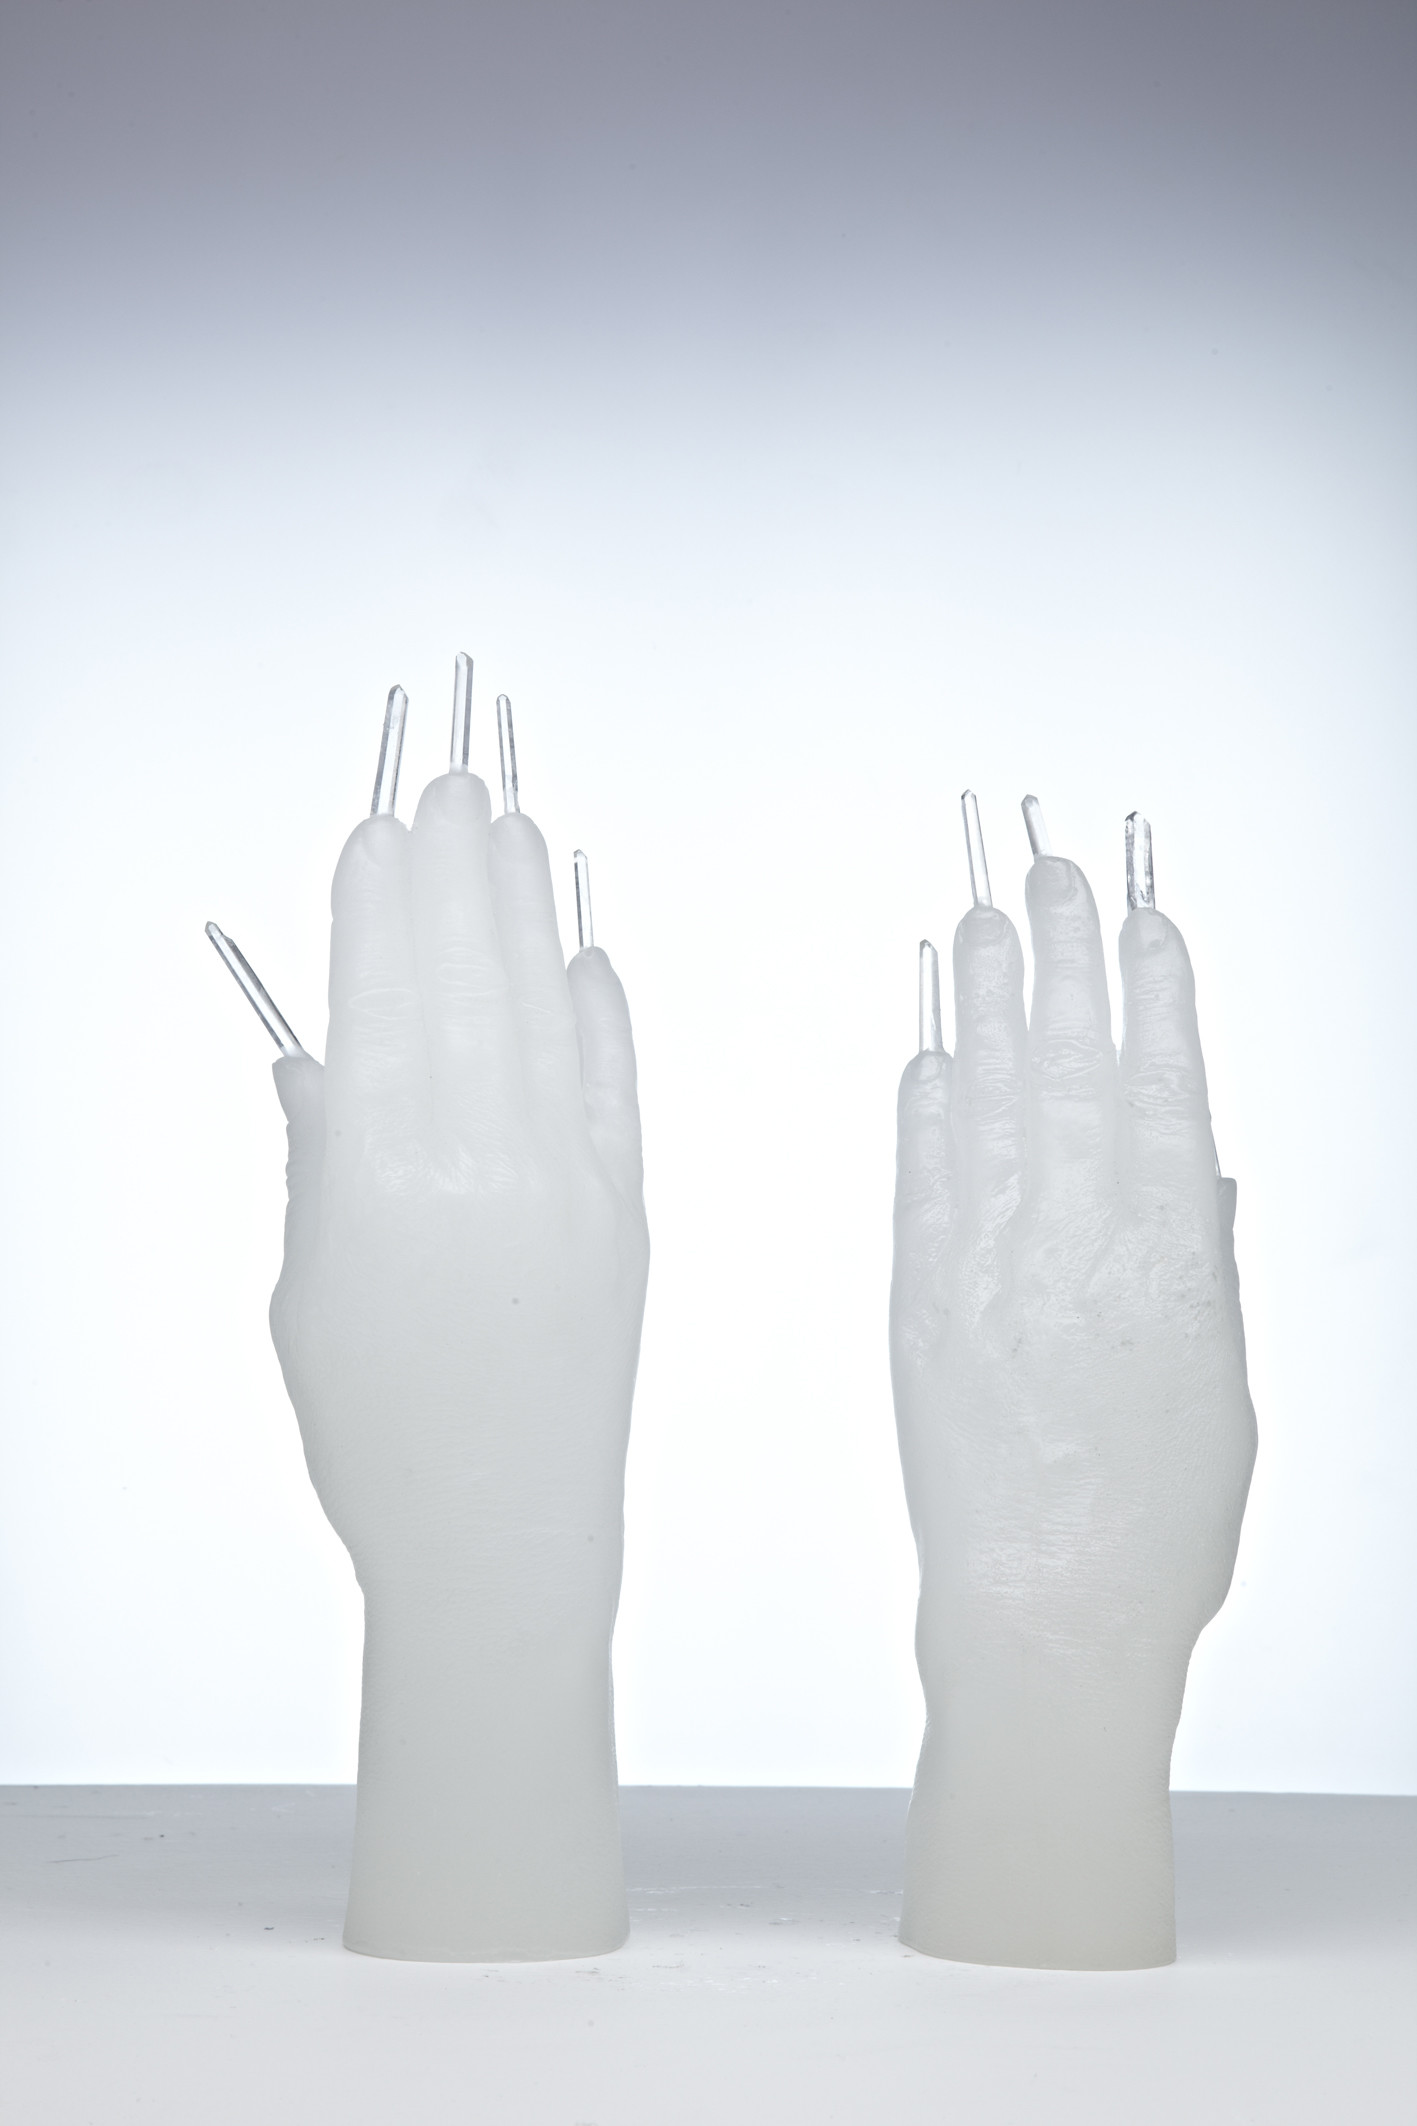 Marina Abramović, The Communicator, 2012